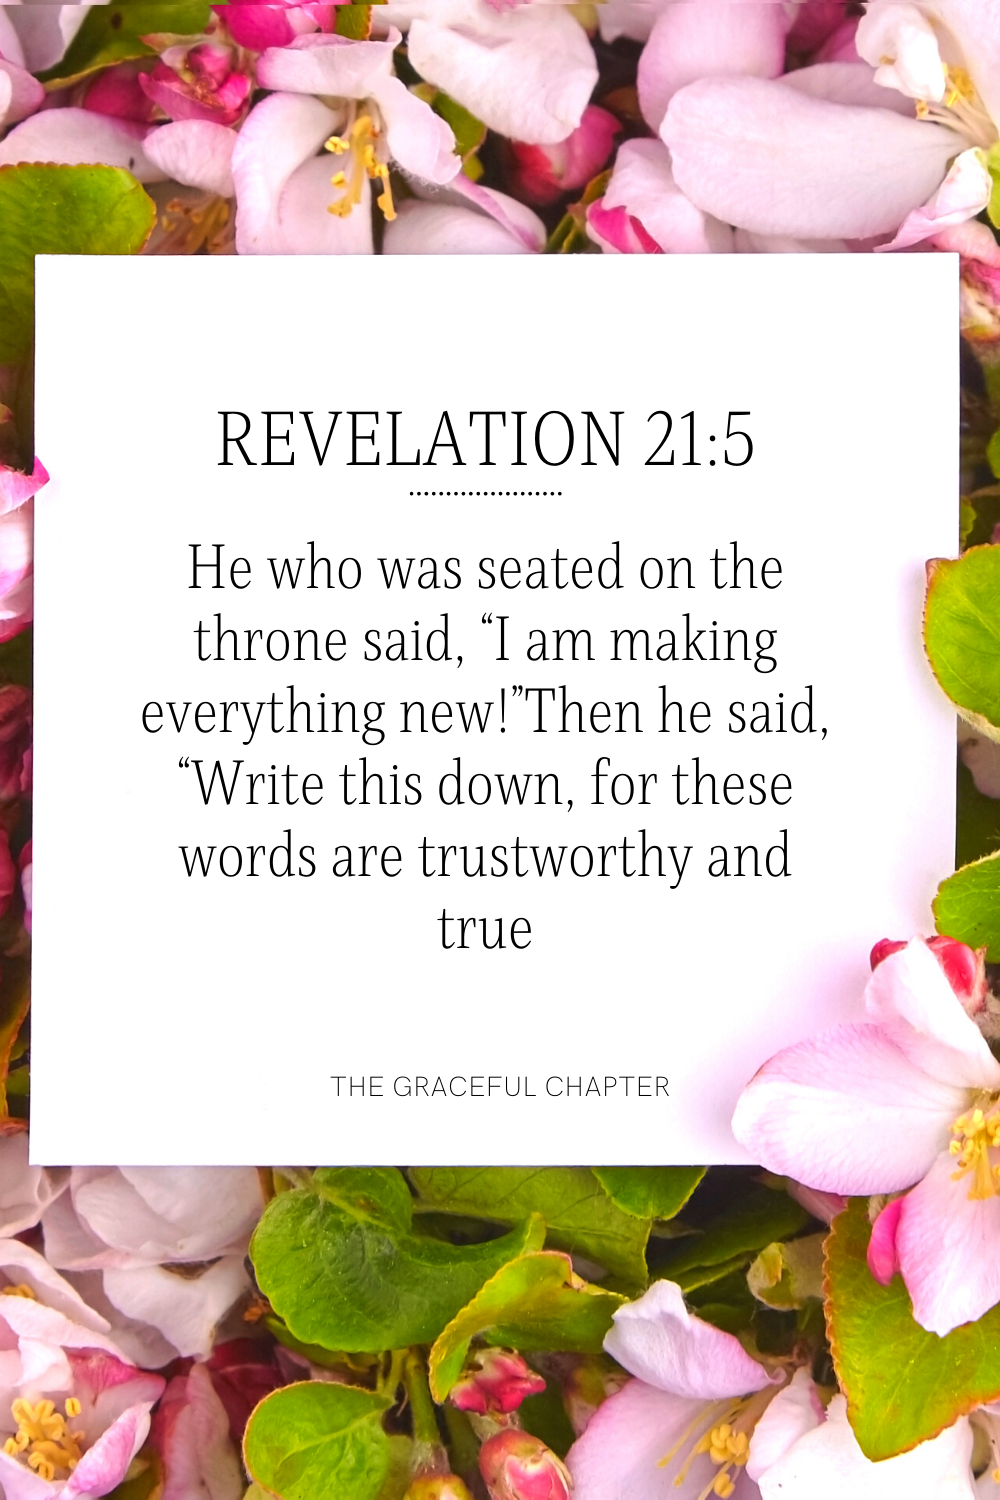 """He who was seated on the throne said, """"I am making everything new!""""Then he said, """"Write this down, for these words are trustworthy and true Revelation 21:5"""